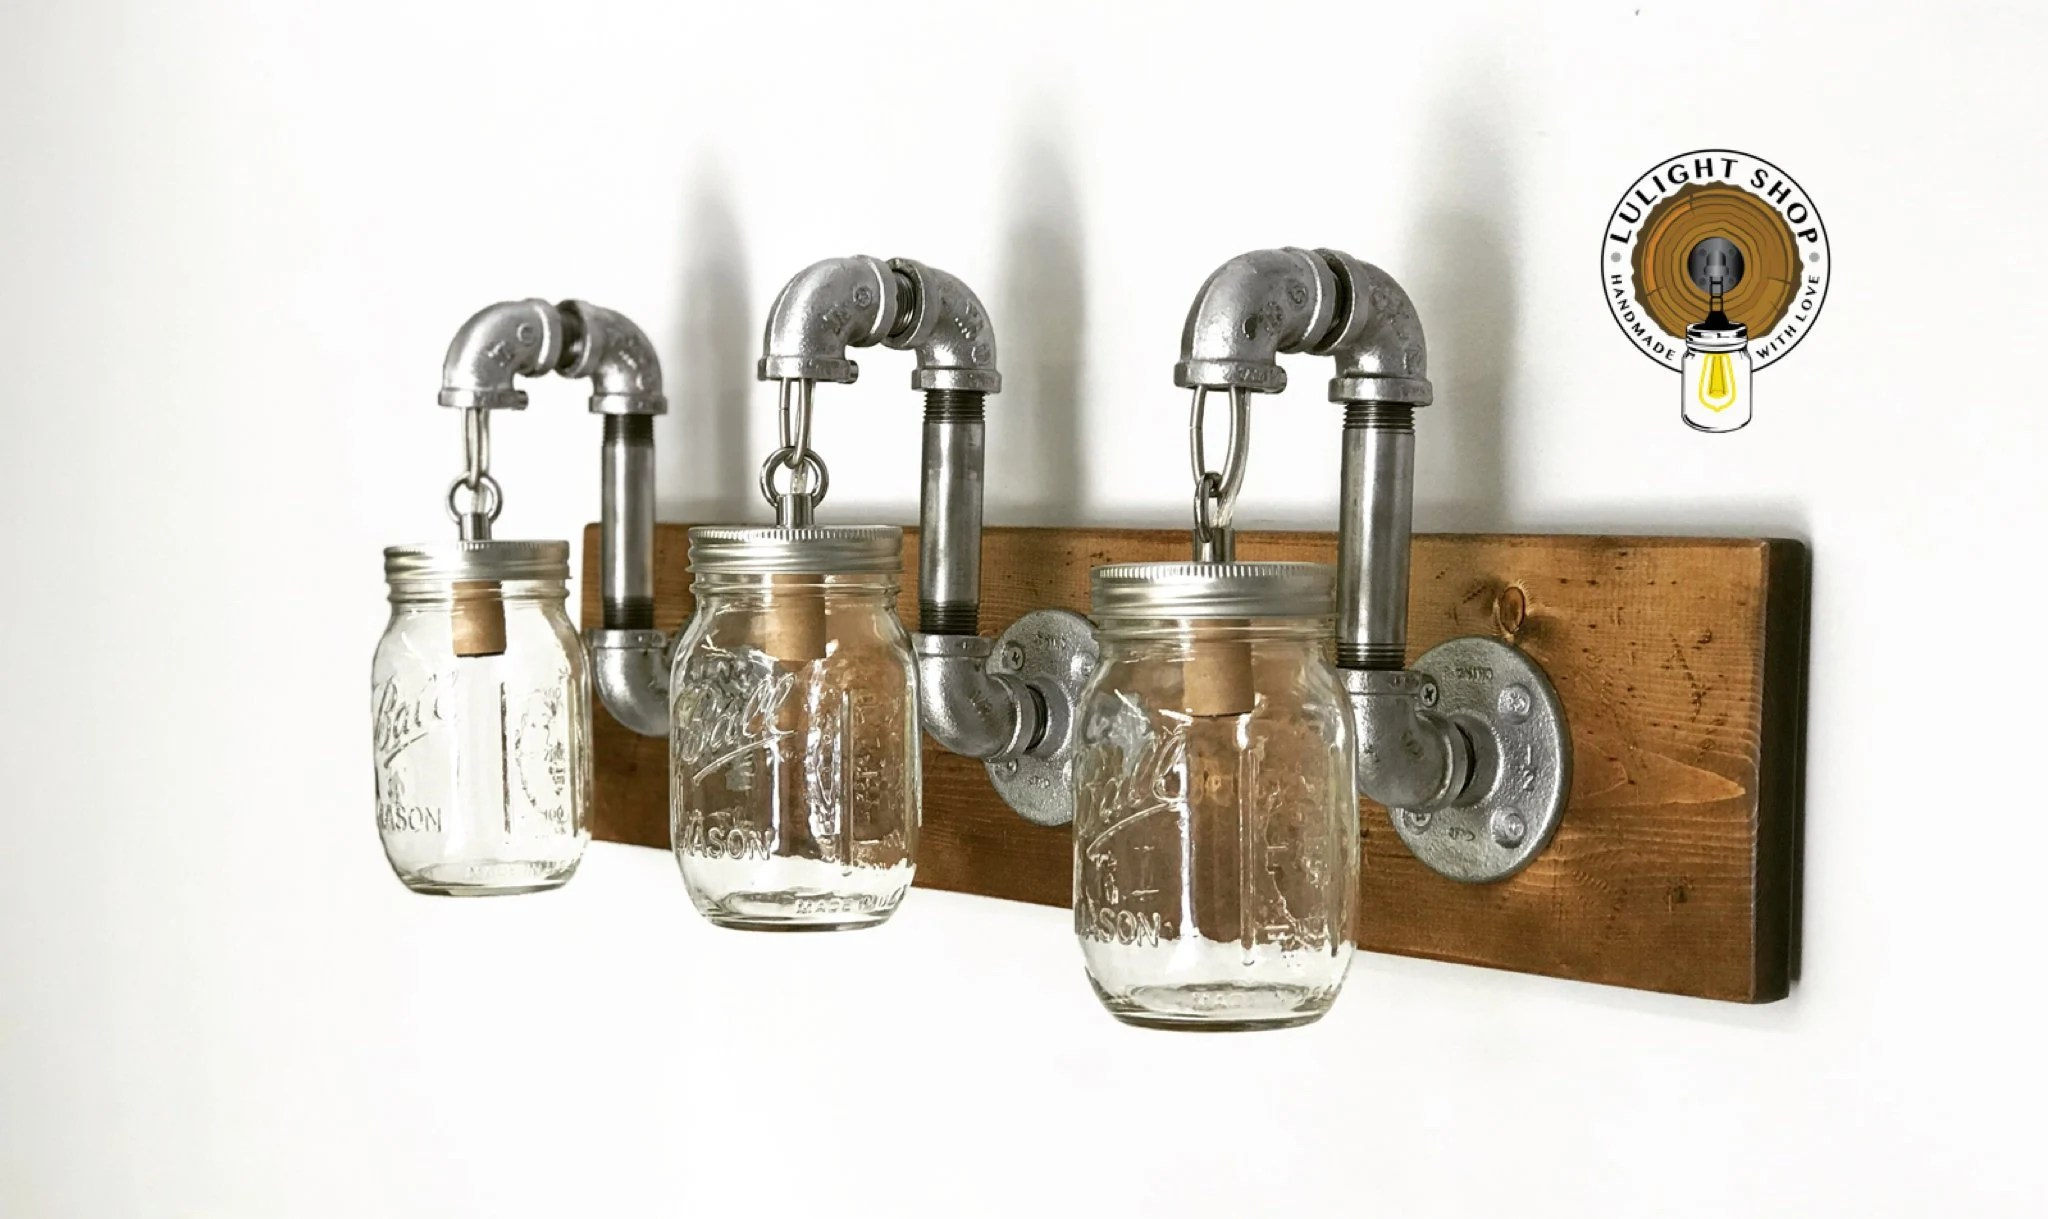 Mason Jar Bathroom Light Rustic Distressed Mason Jar Light Fixture 3 Mason Jars Light Industrial Lights Modern Light Vanity Light Wall Fixture Bathroom Light